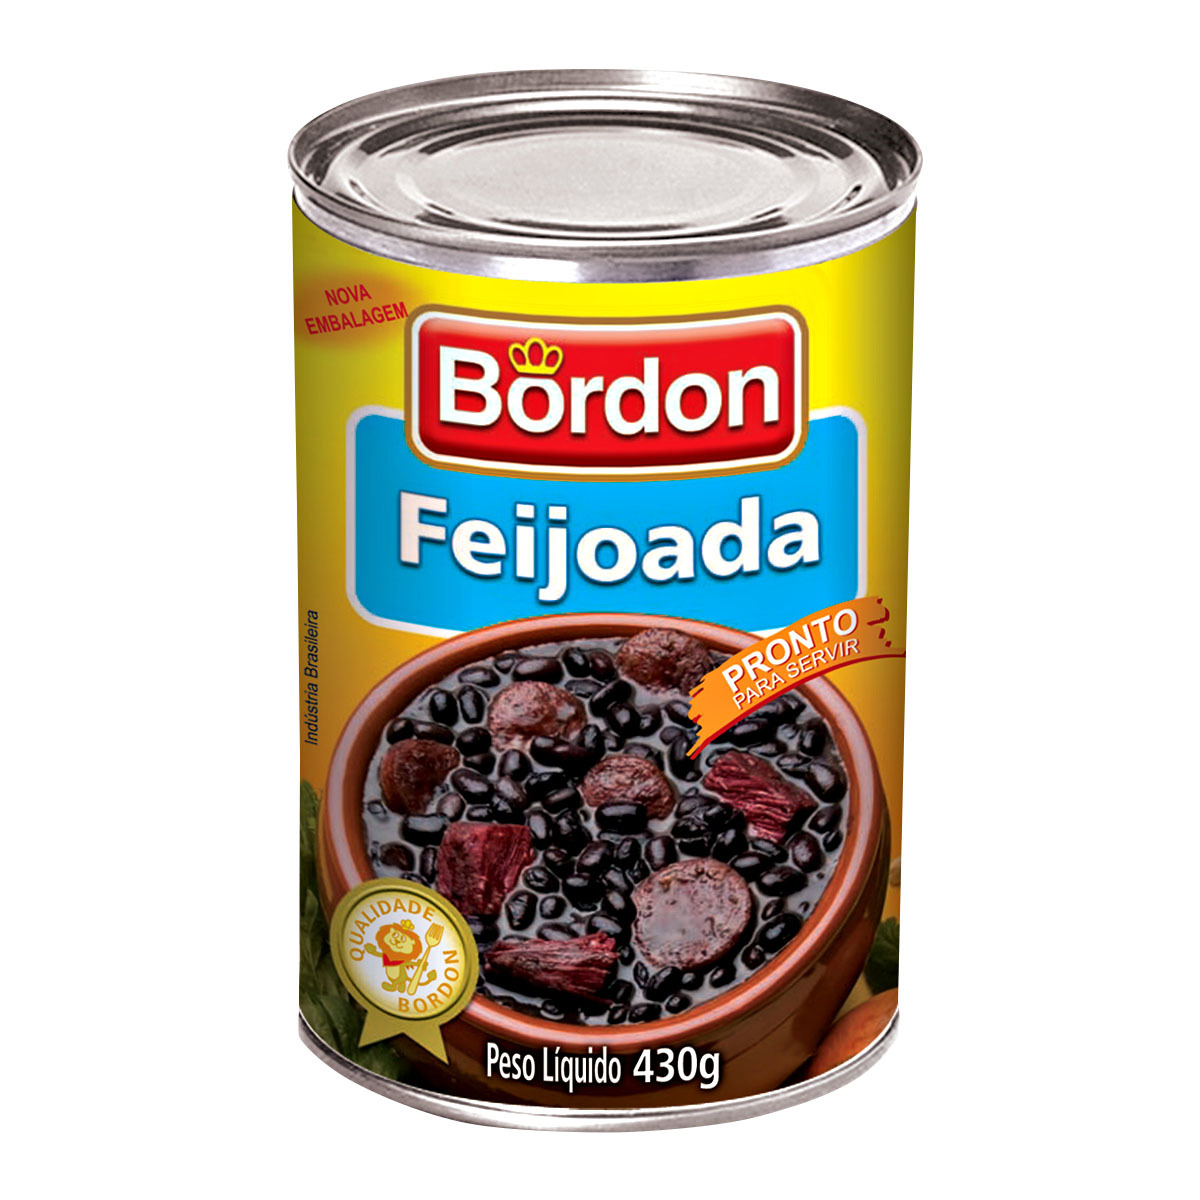 7896031224583 - FEIJOADA BORDON 24X 2513 | FEIJOADA BORDON 430 GR